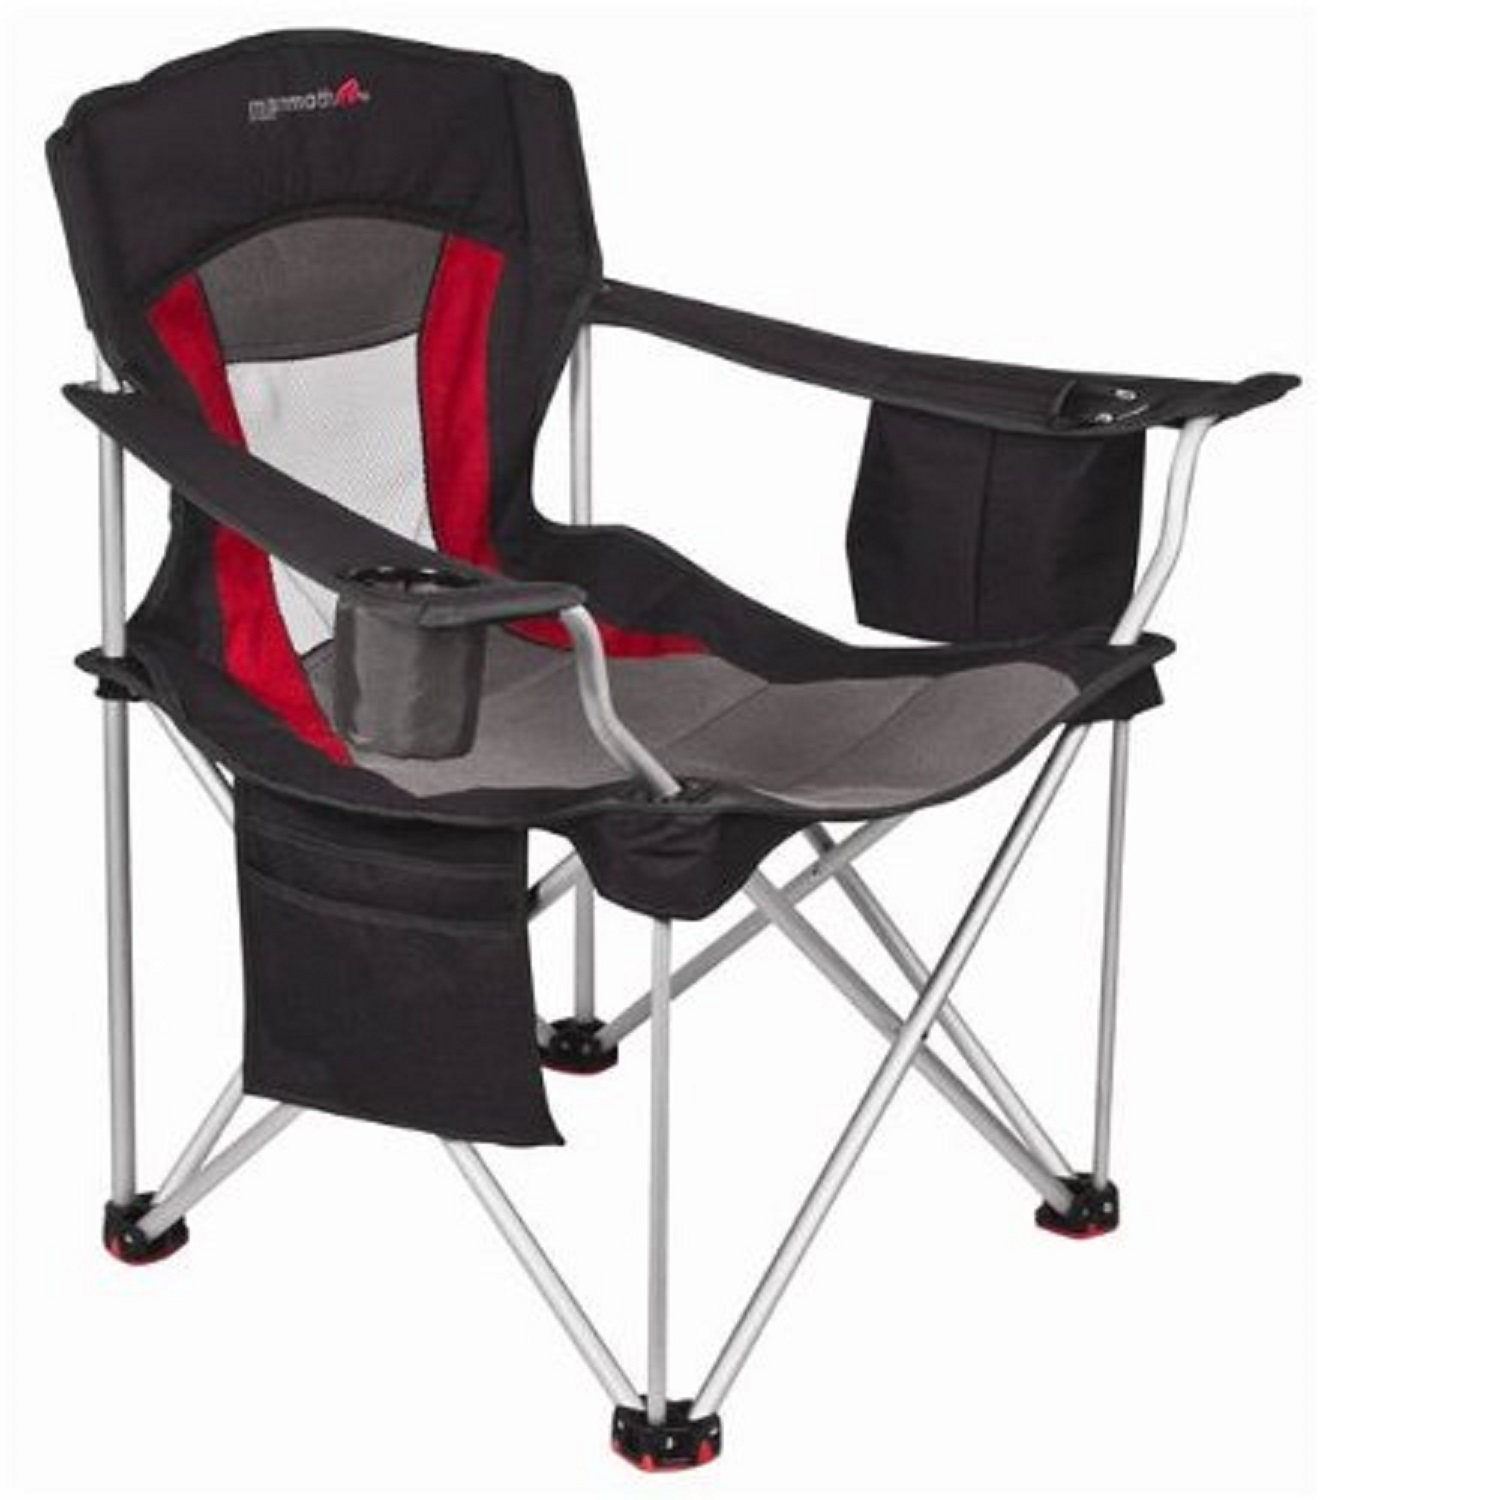 heavy duty aluminum sports chair armless office chairs with wheels base camp mr heater mammoth leisure